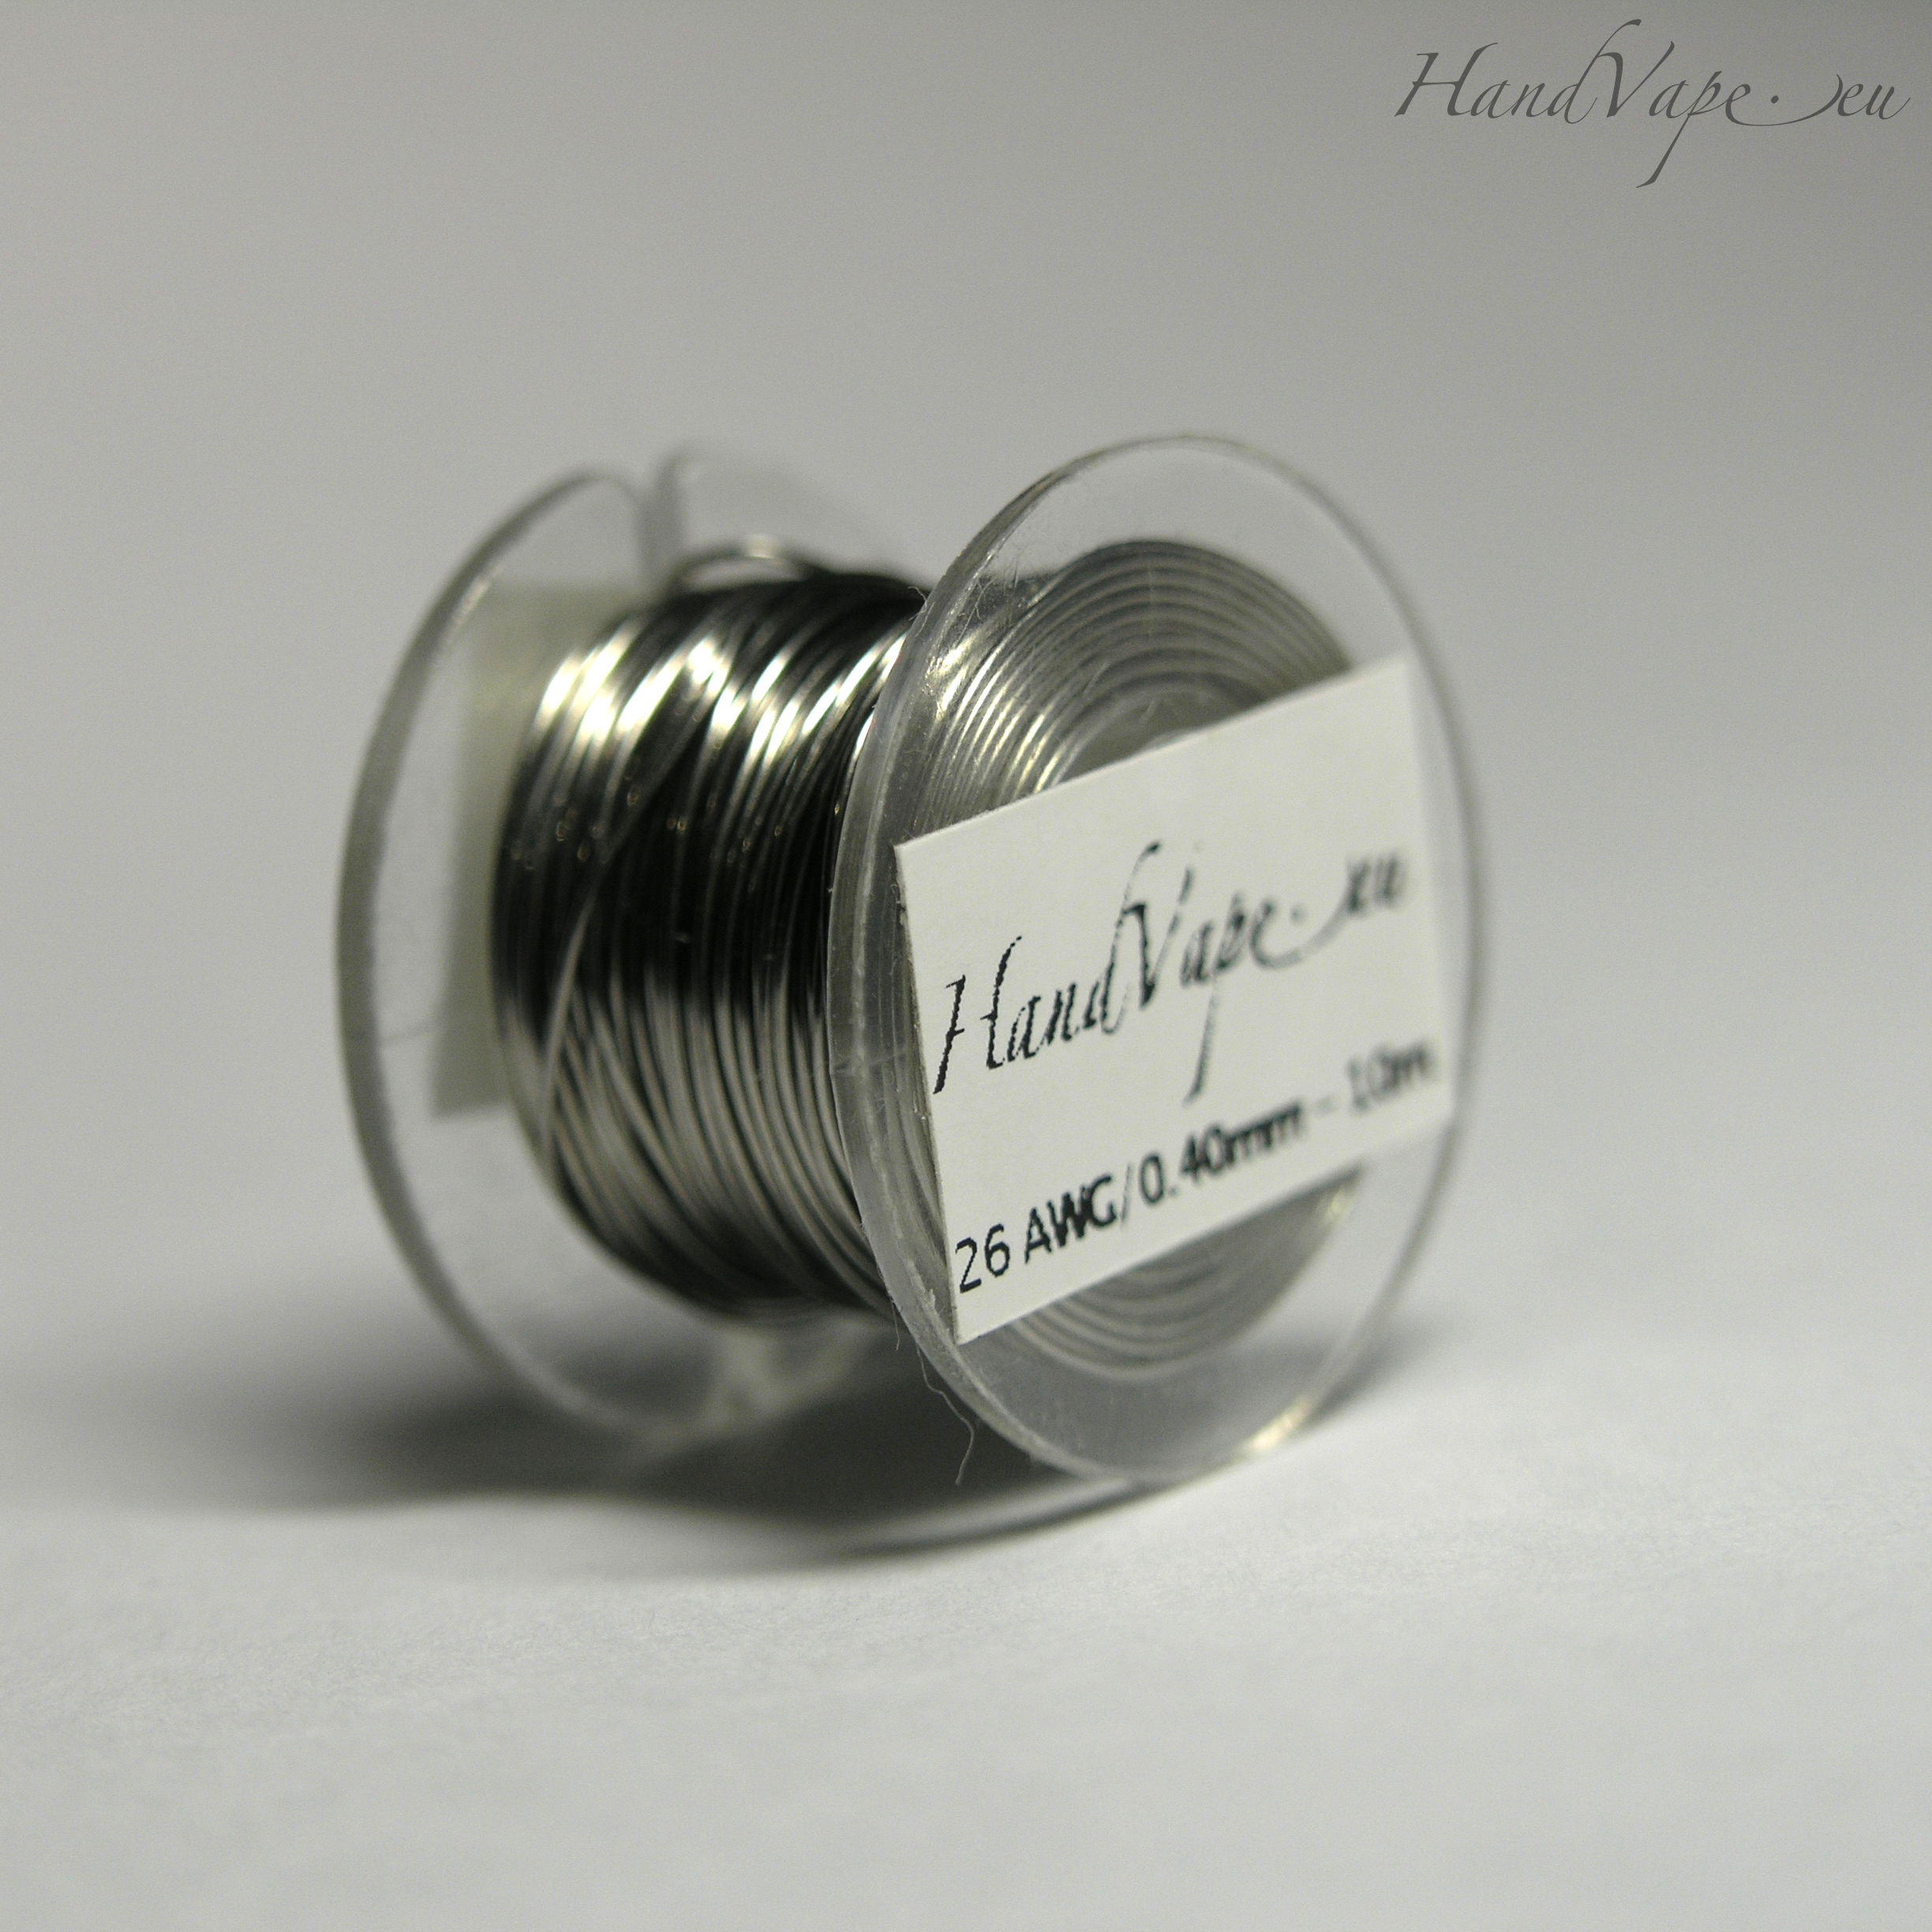 Kanthal A1 Wire | HandVape.eu :: Made by hand in Estonia